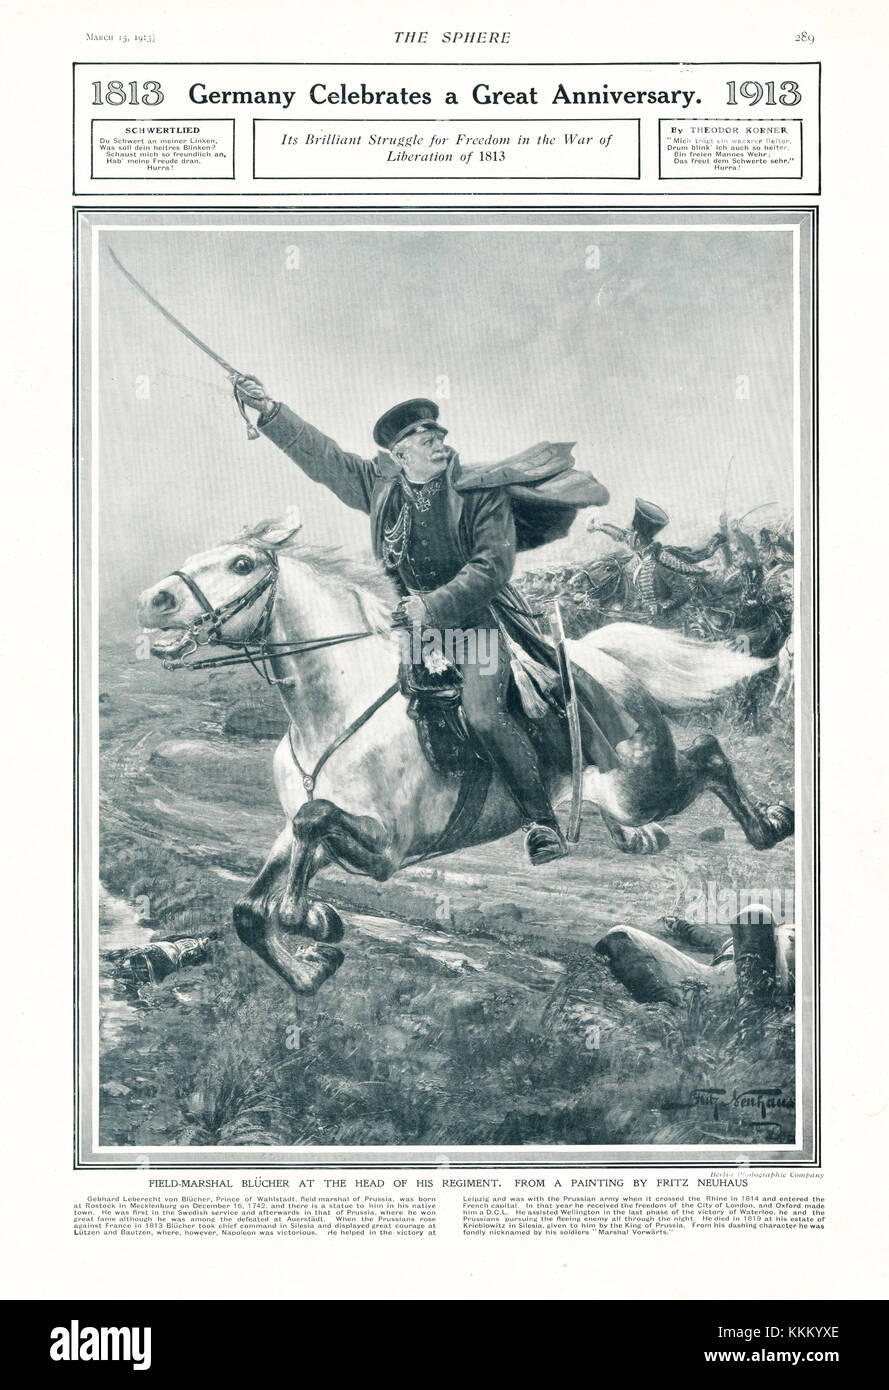 1913 The Sphere Field Marshal Blücher charging at the head of his regiment - Stock Image